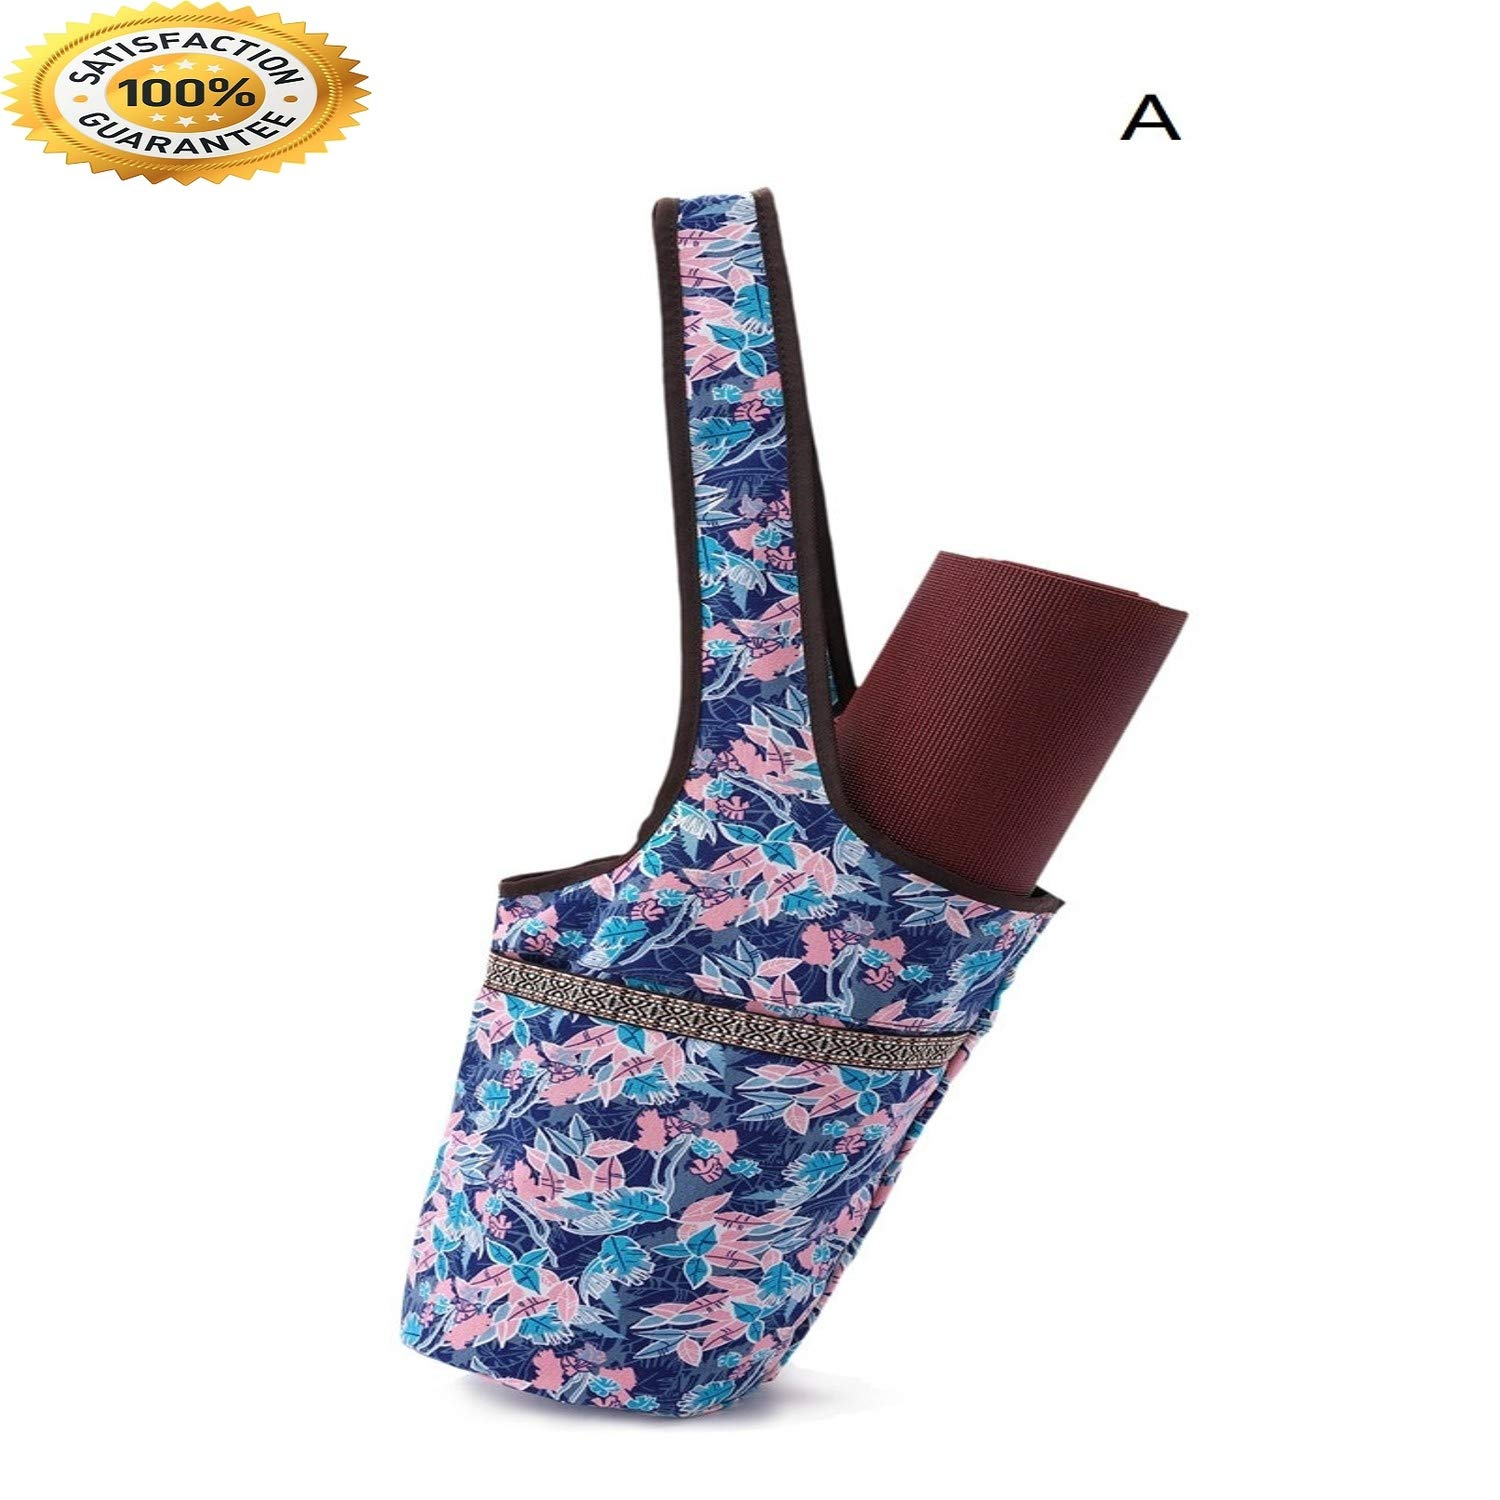 Amazon.com   FIRE ANT Canvas Sport Bag for Fitness Bag Big Capacity Yoga  Bag Yoga Mat Backpack Yoga Mat Case Fitness Carriers (A)   Sports   Outdoors 31bc5e5e9596a